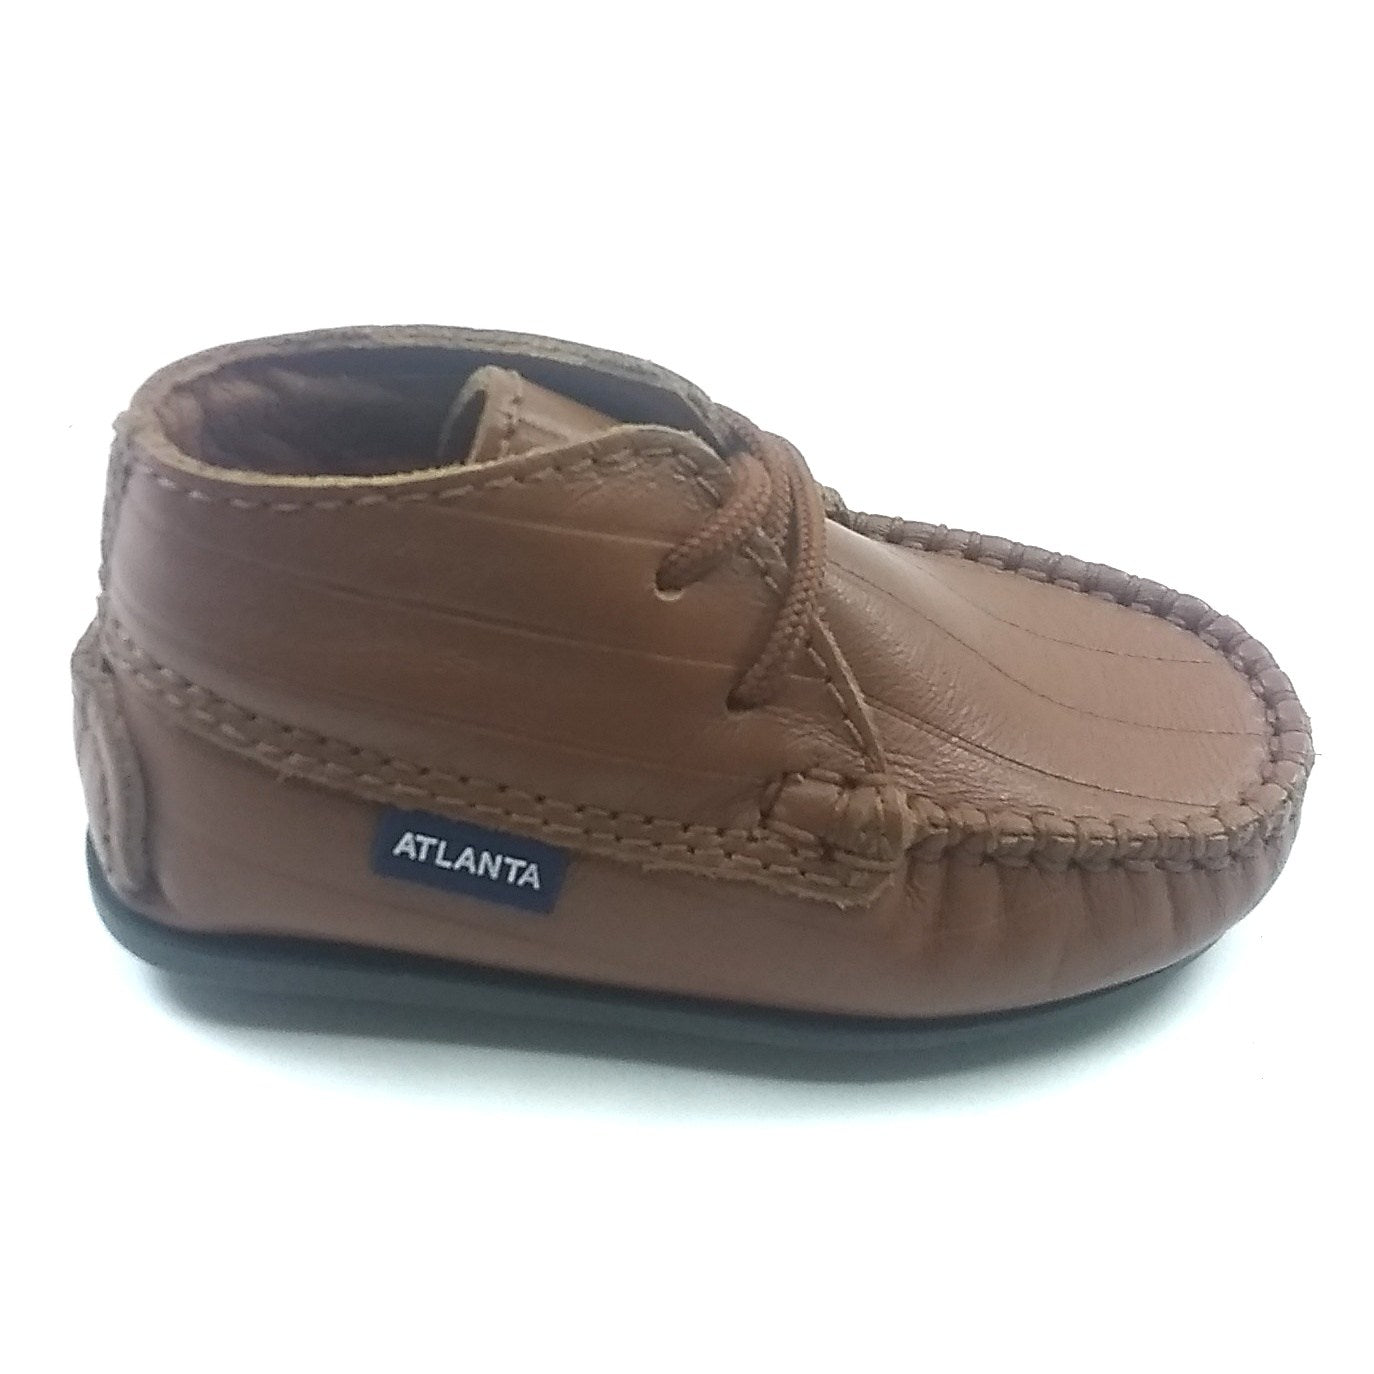 Atlanta Mocassin Brown Laceup First Shoe